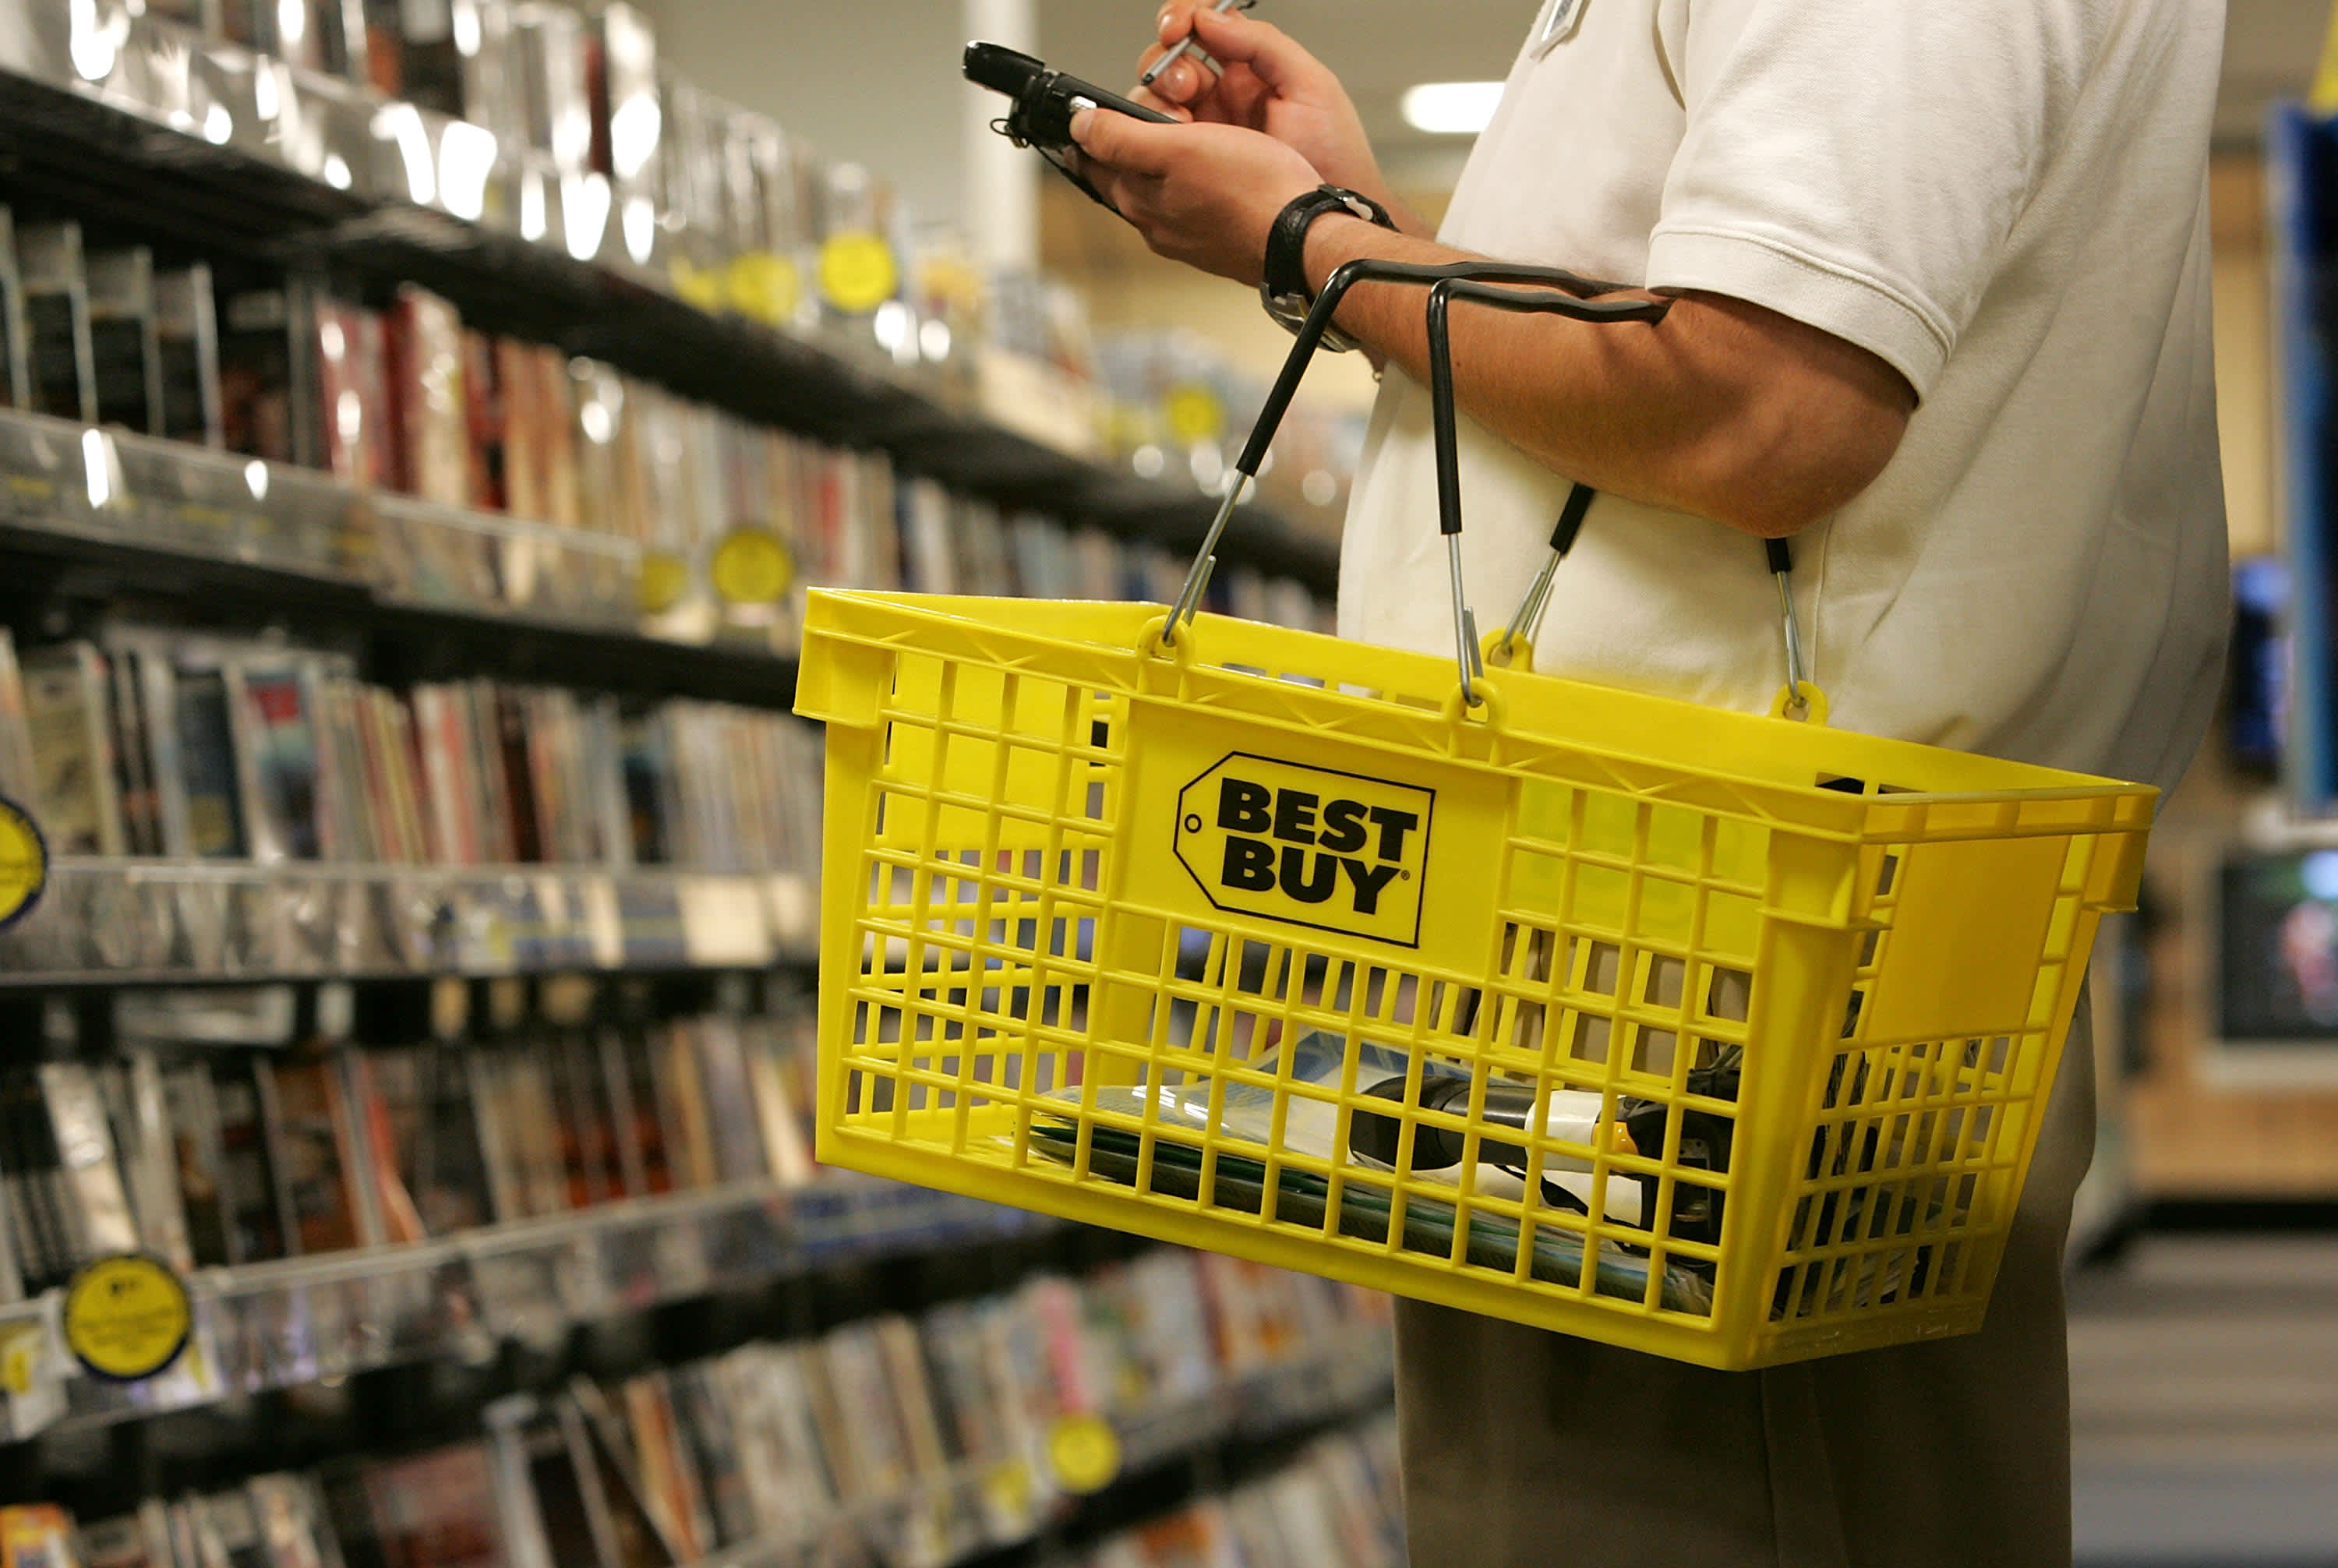 Guggenheim says Best Buy is the most undervalued large-cap retailer, sees an 11% upside